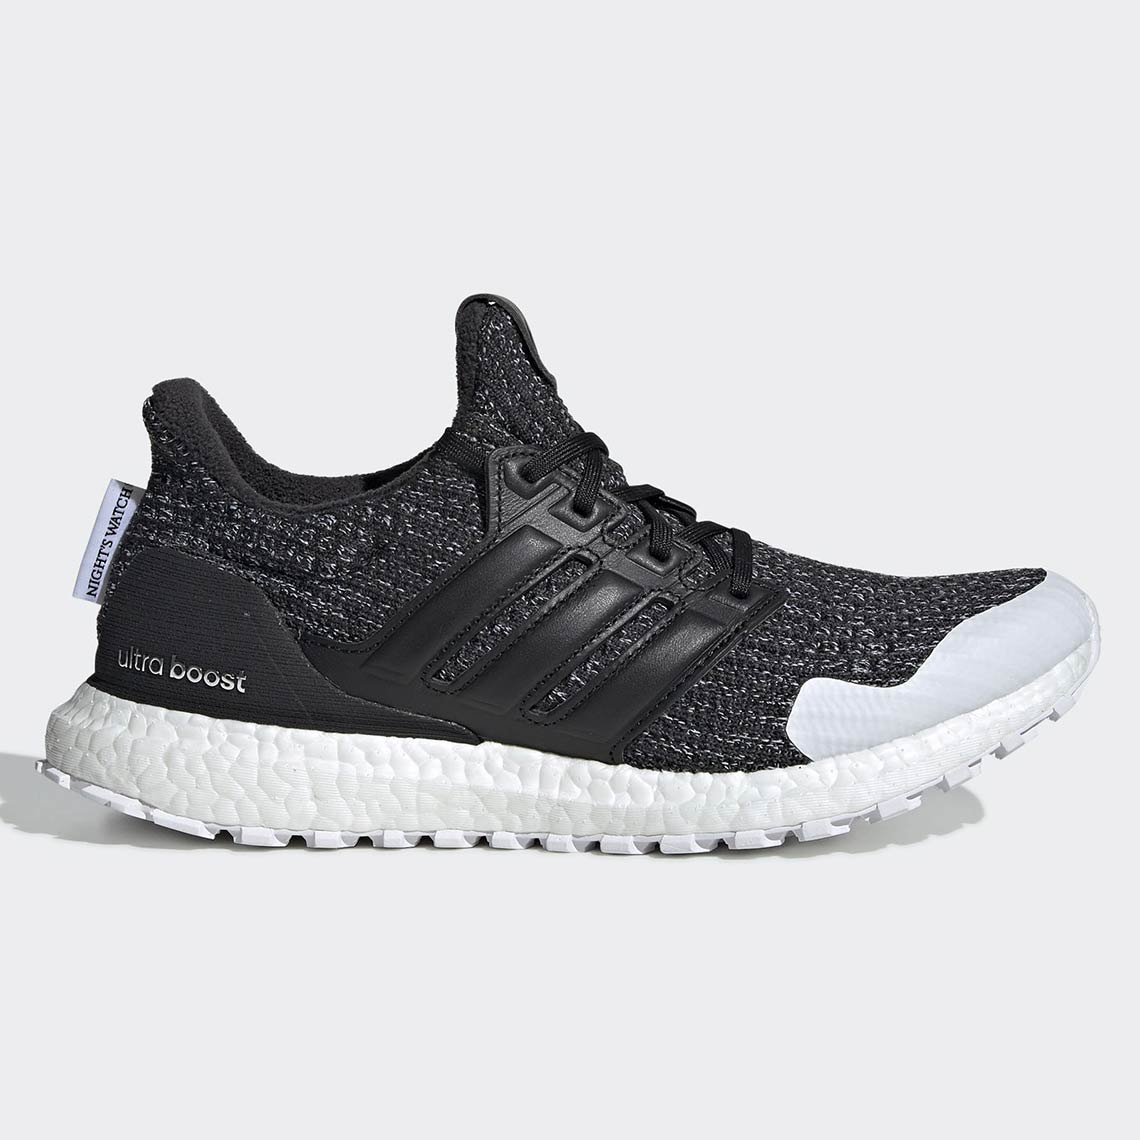 game-of-thrones-adidas-ultra-boost-nights-watch-EE3707-6.jpg